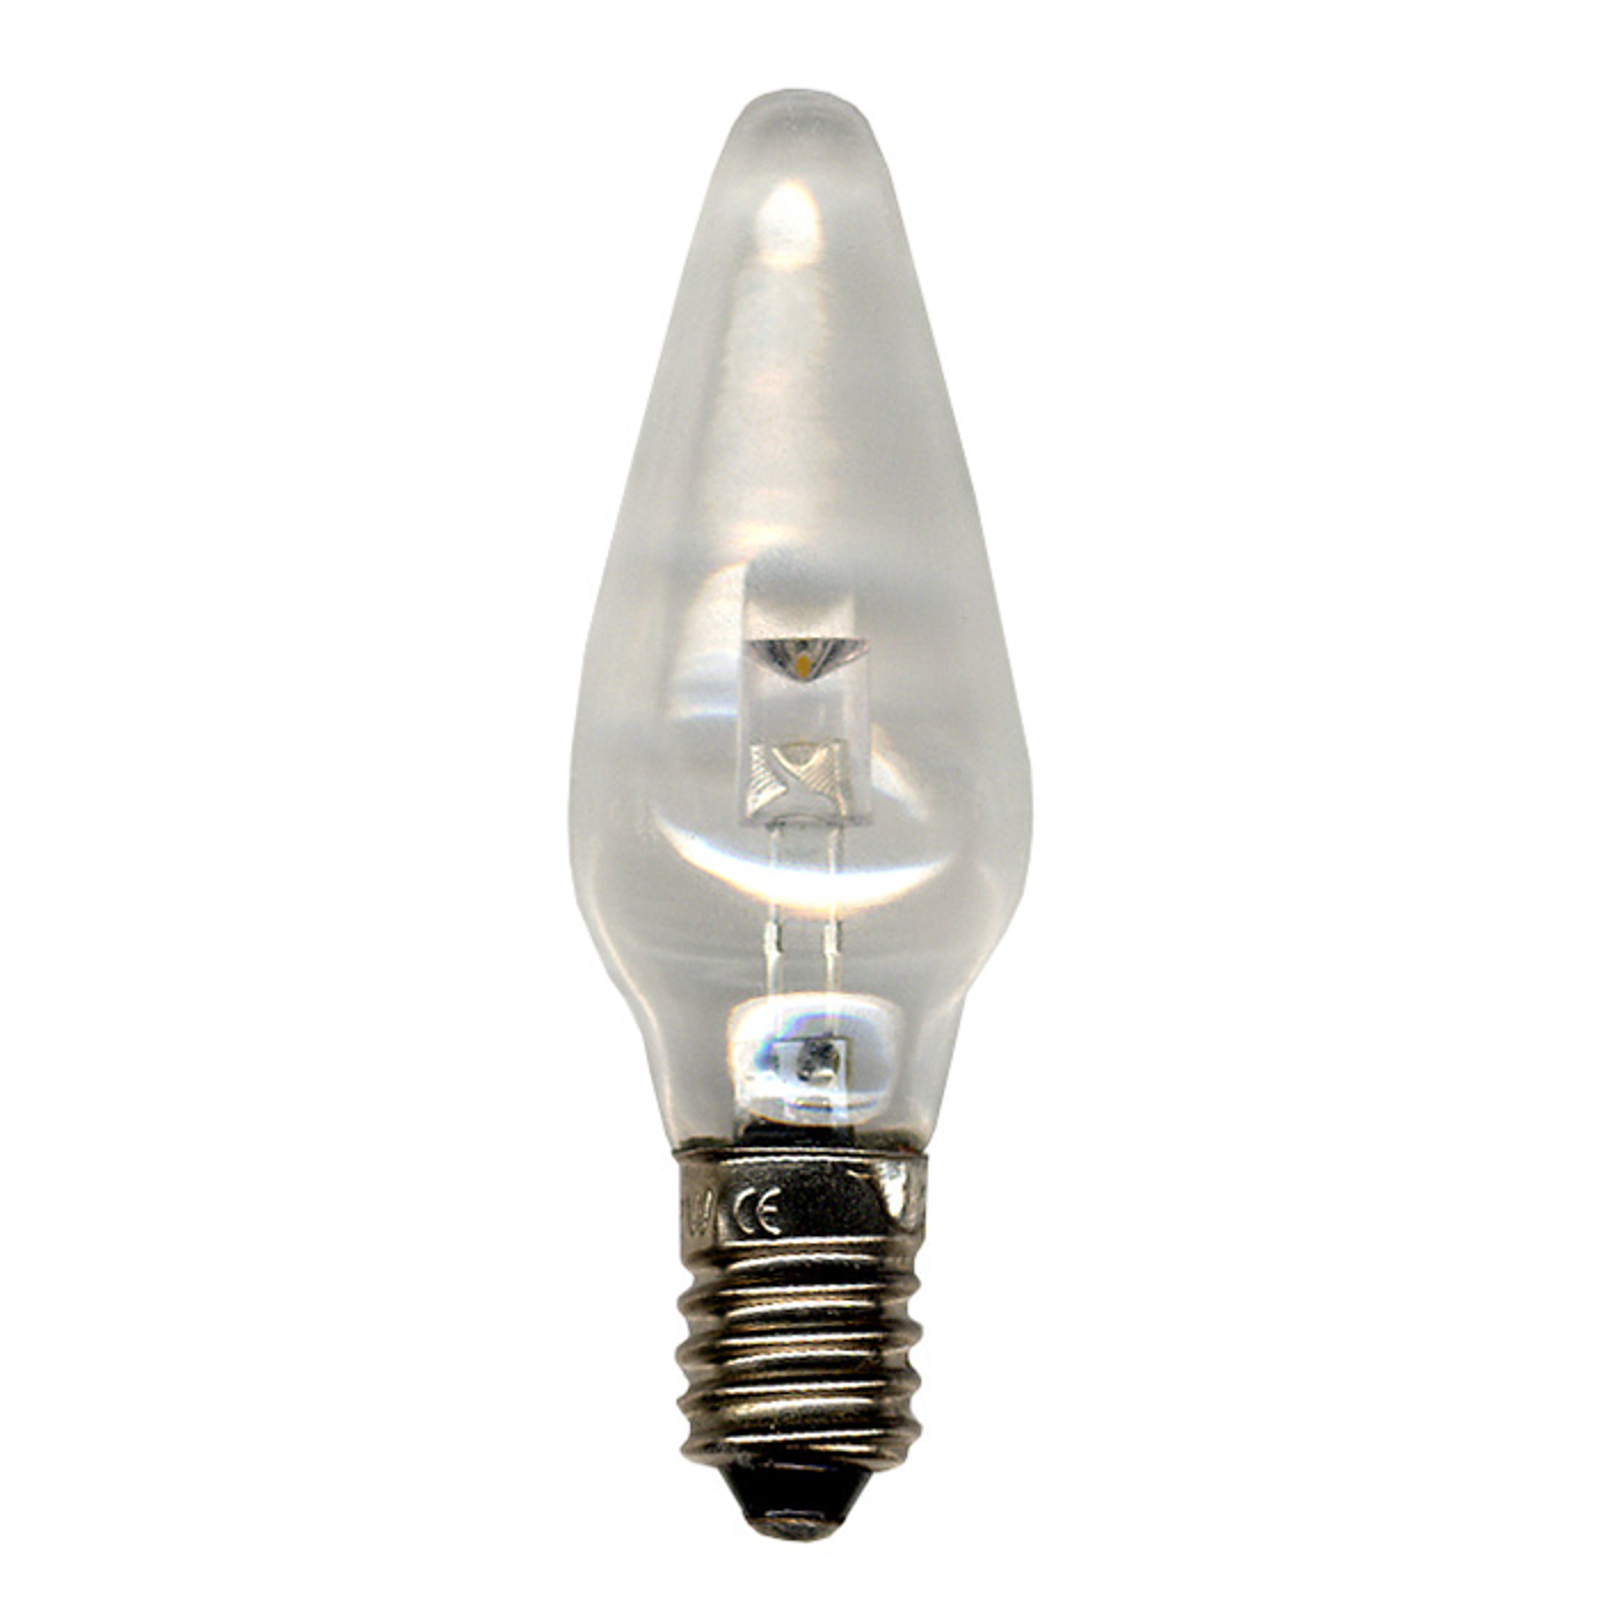 E10 0,2W 12V bombillas LED, transparente